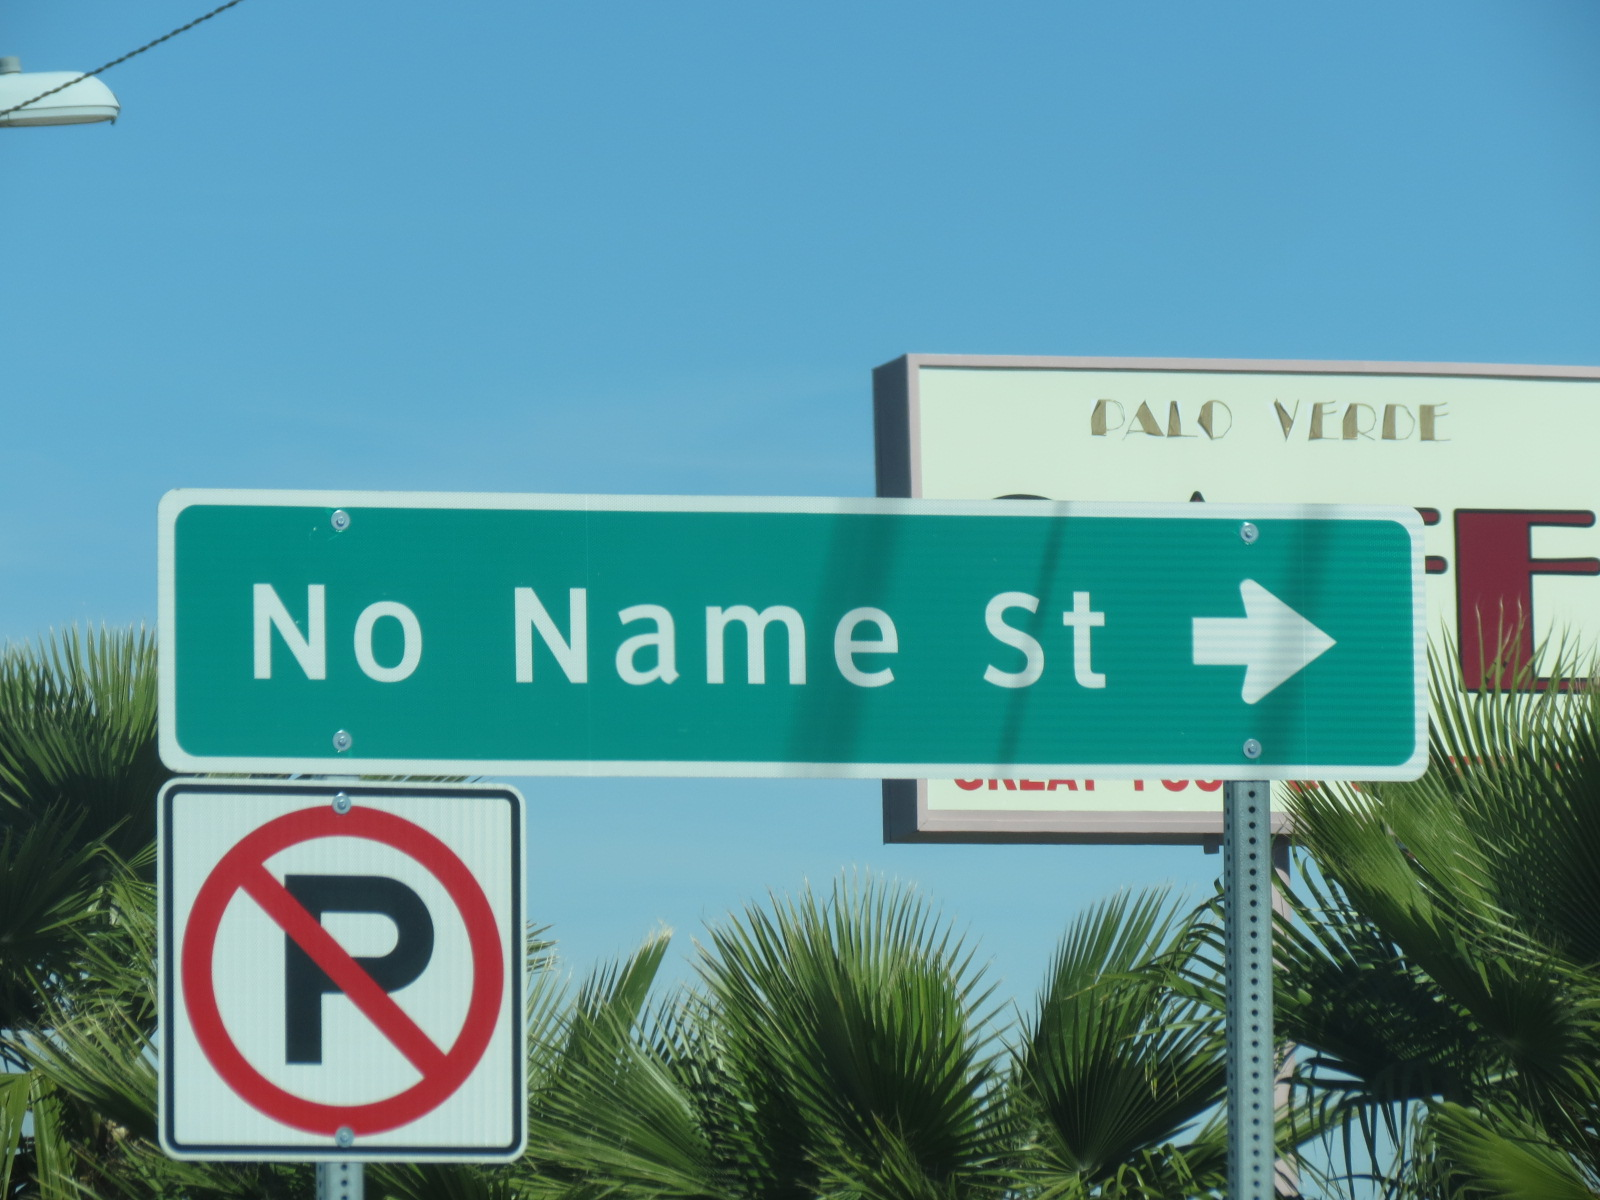 My favorite street name in Quartzsite, AZ